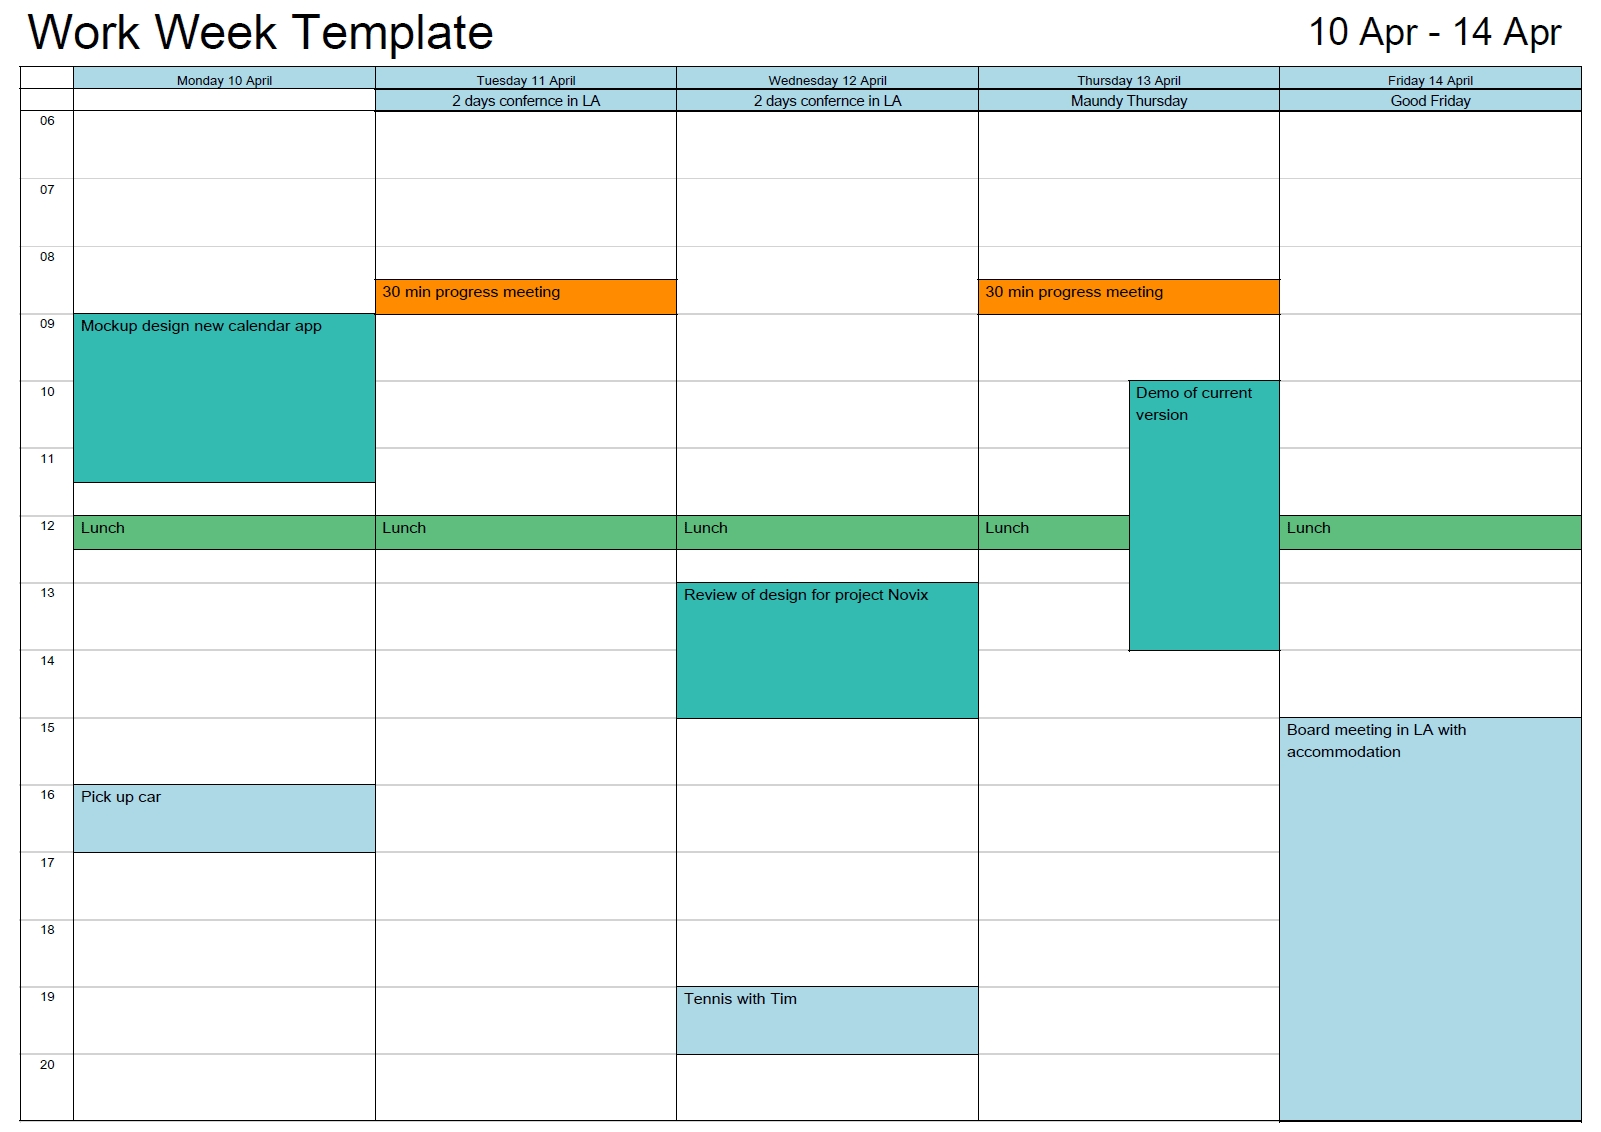 Outlook Printable Calendar In A4/a3 | Outlook Calendar Print regarding Print A Blank Outlook Calendar With Times